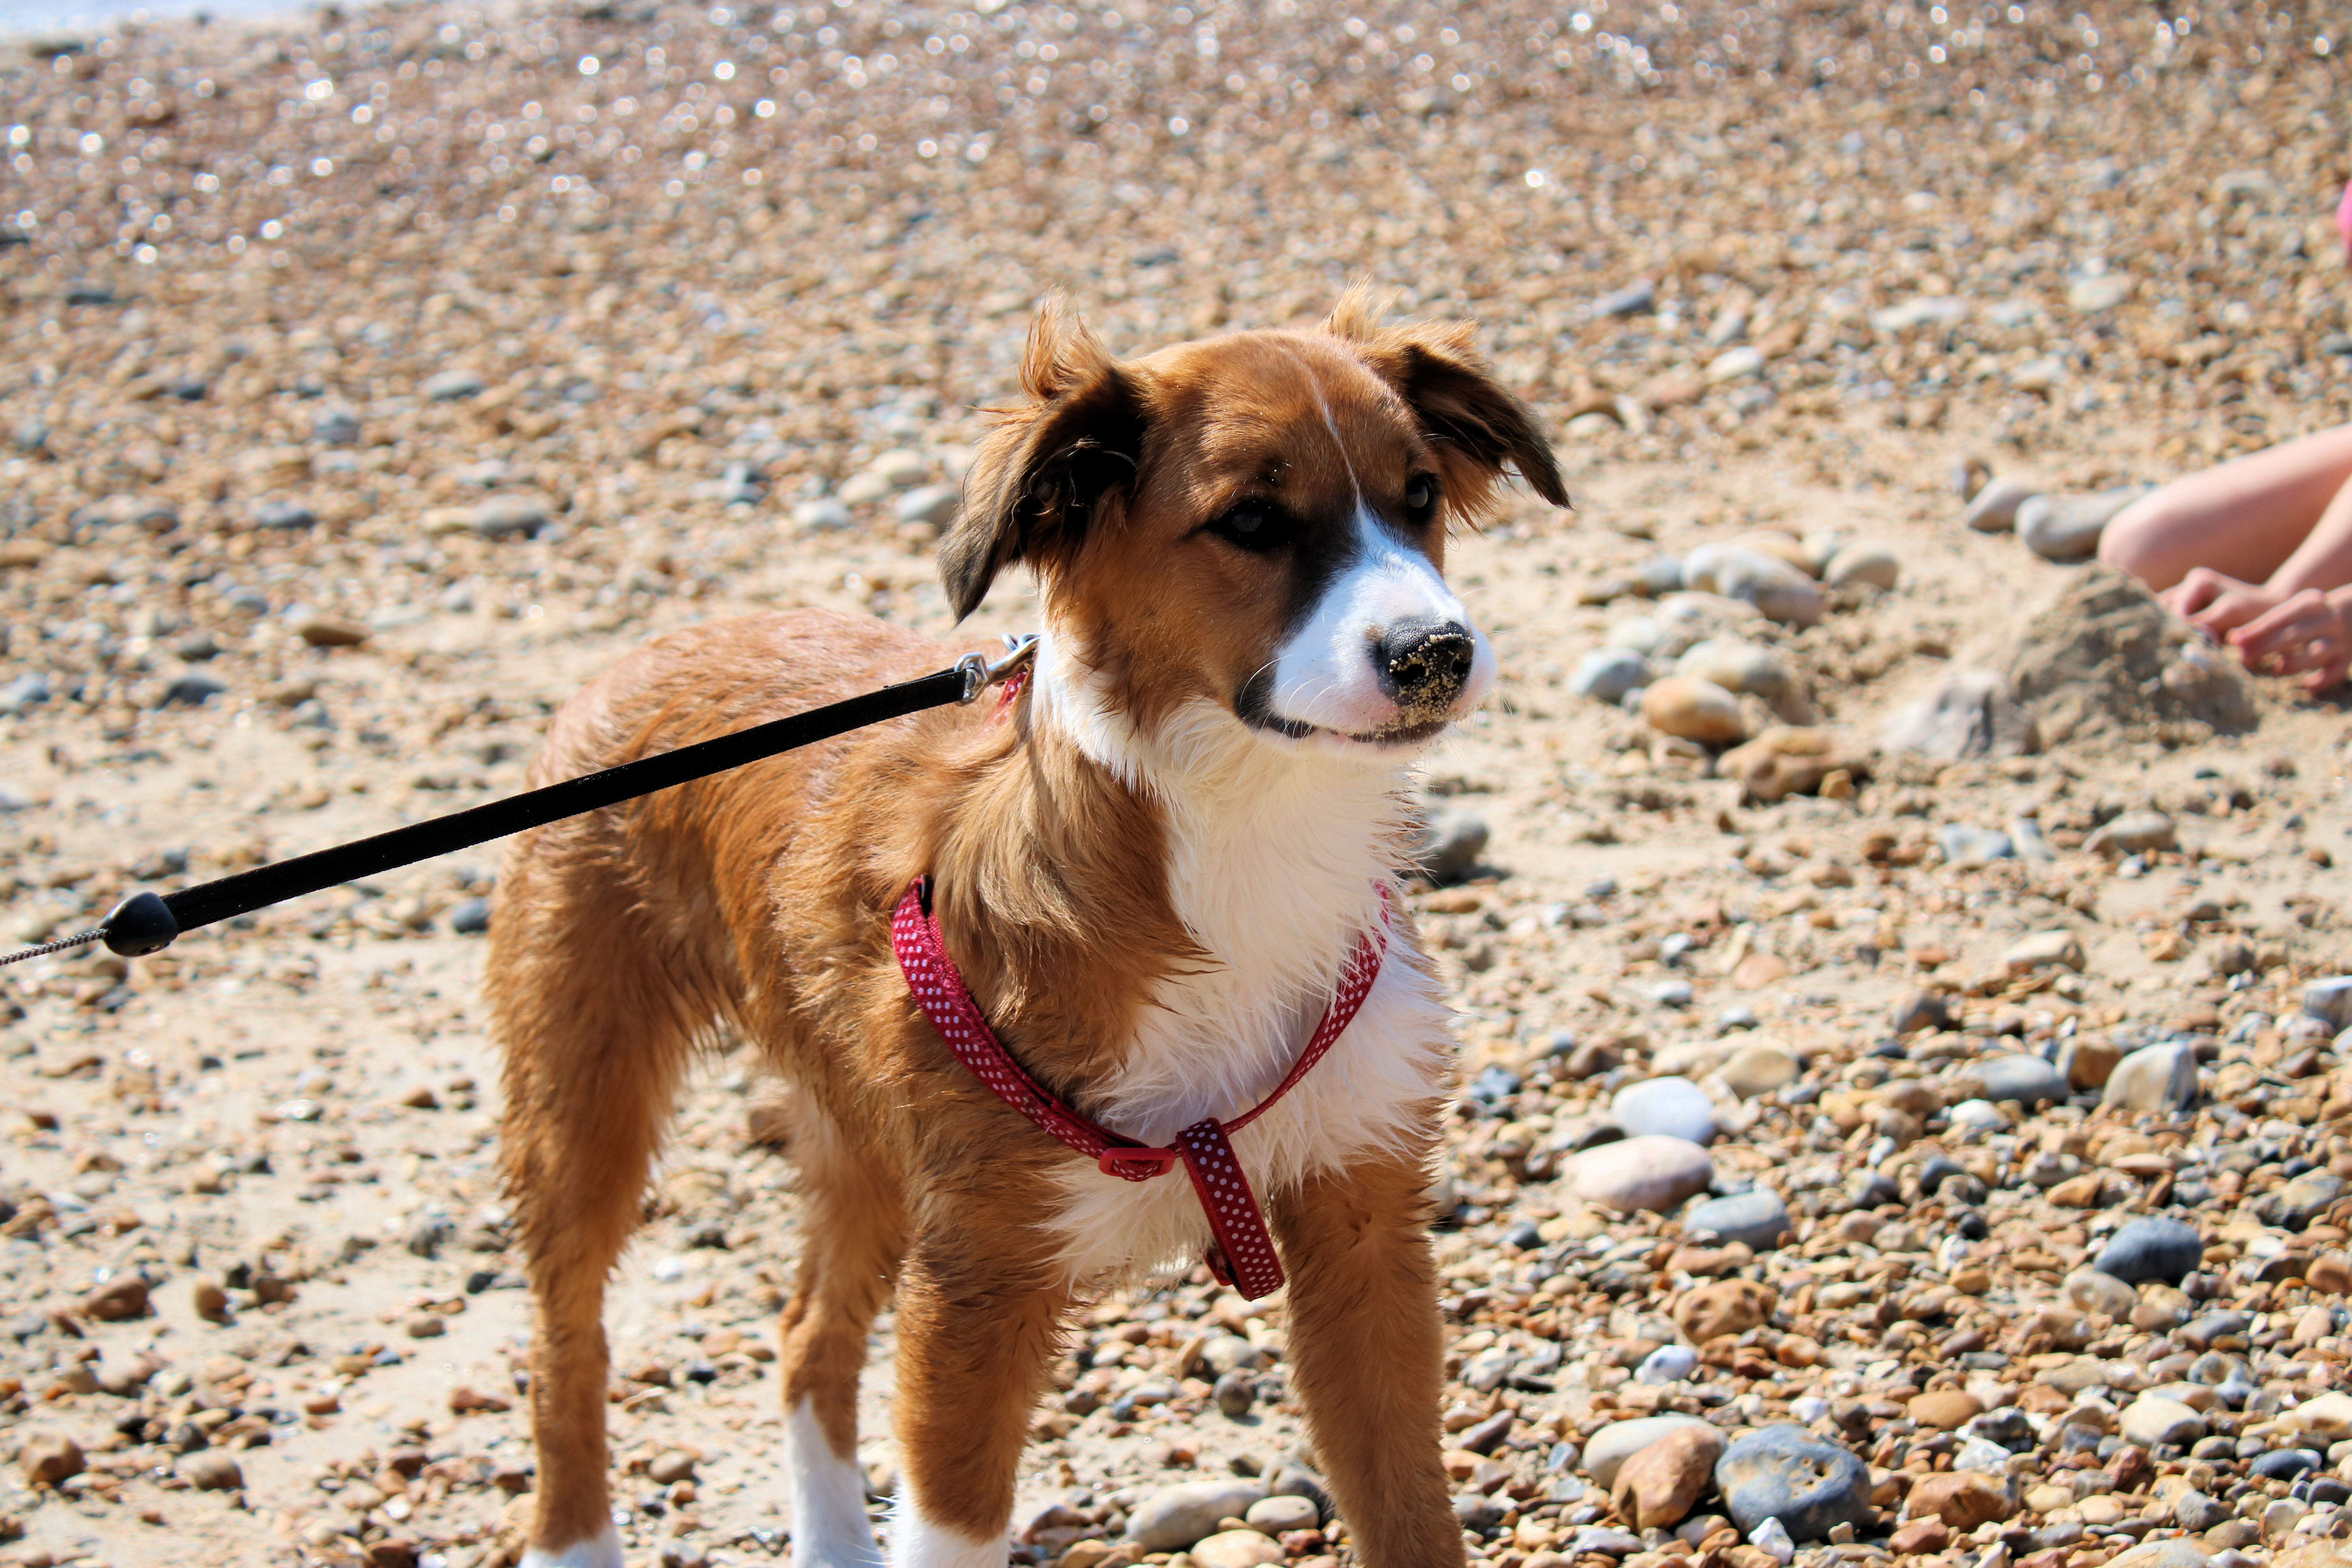 Young Willow puppy stood on beach